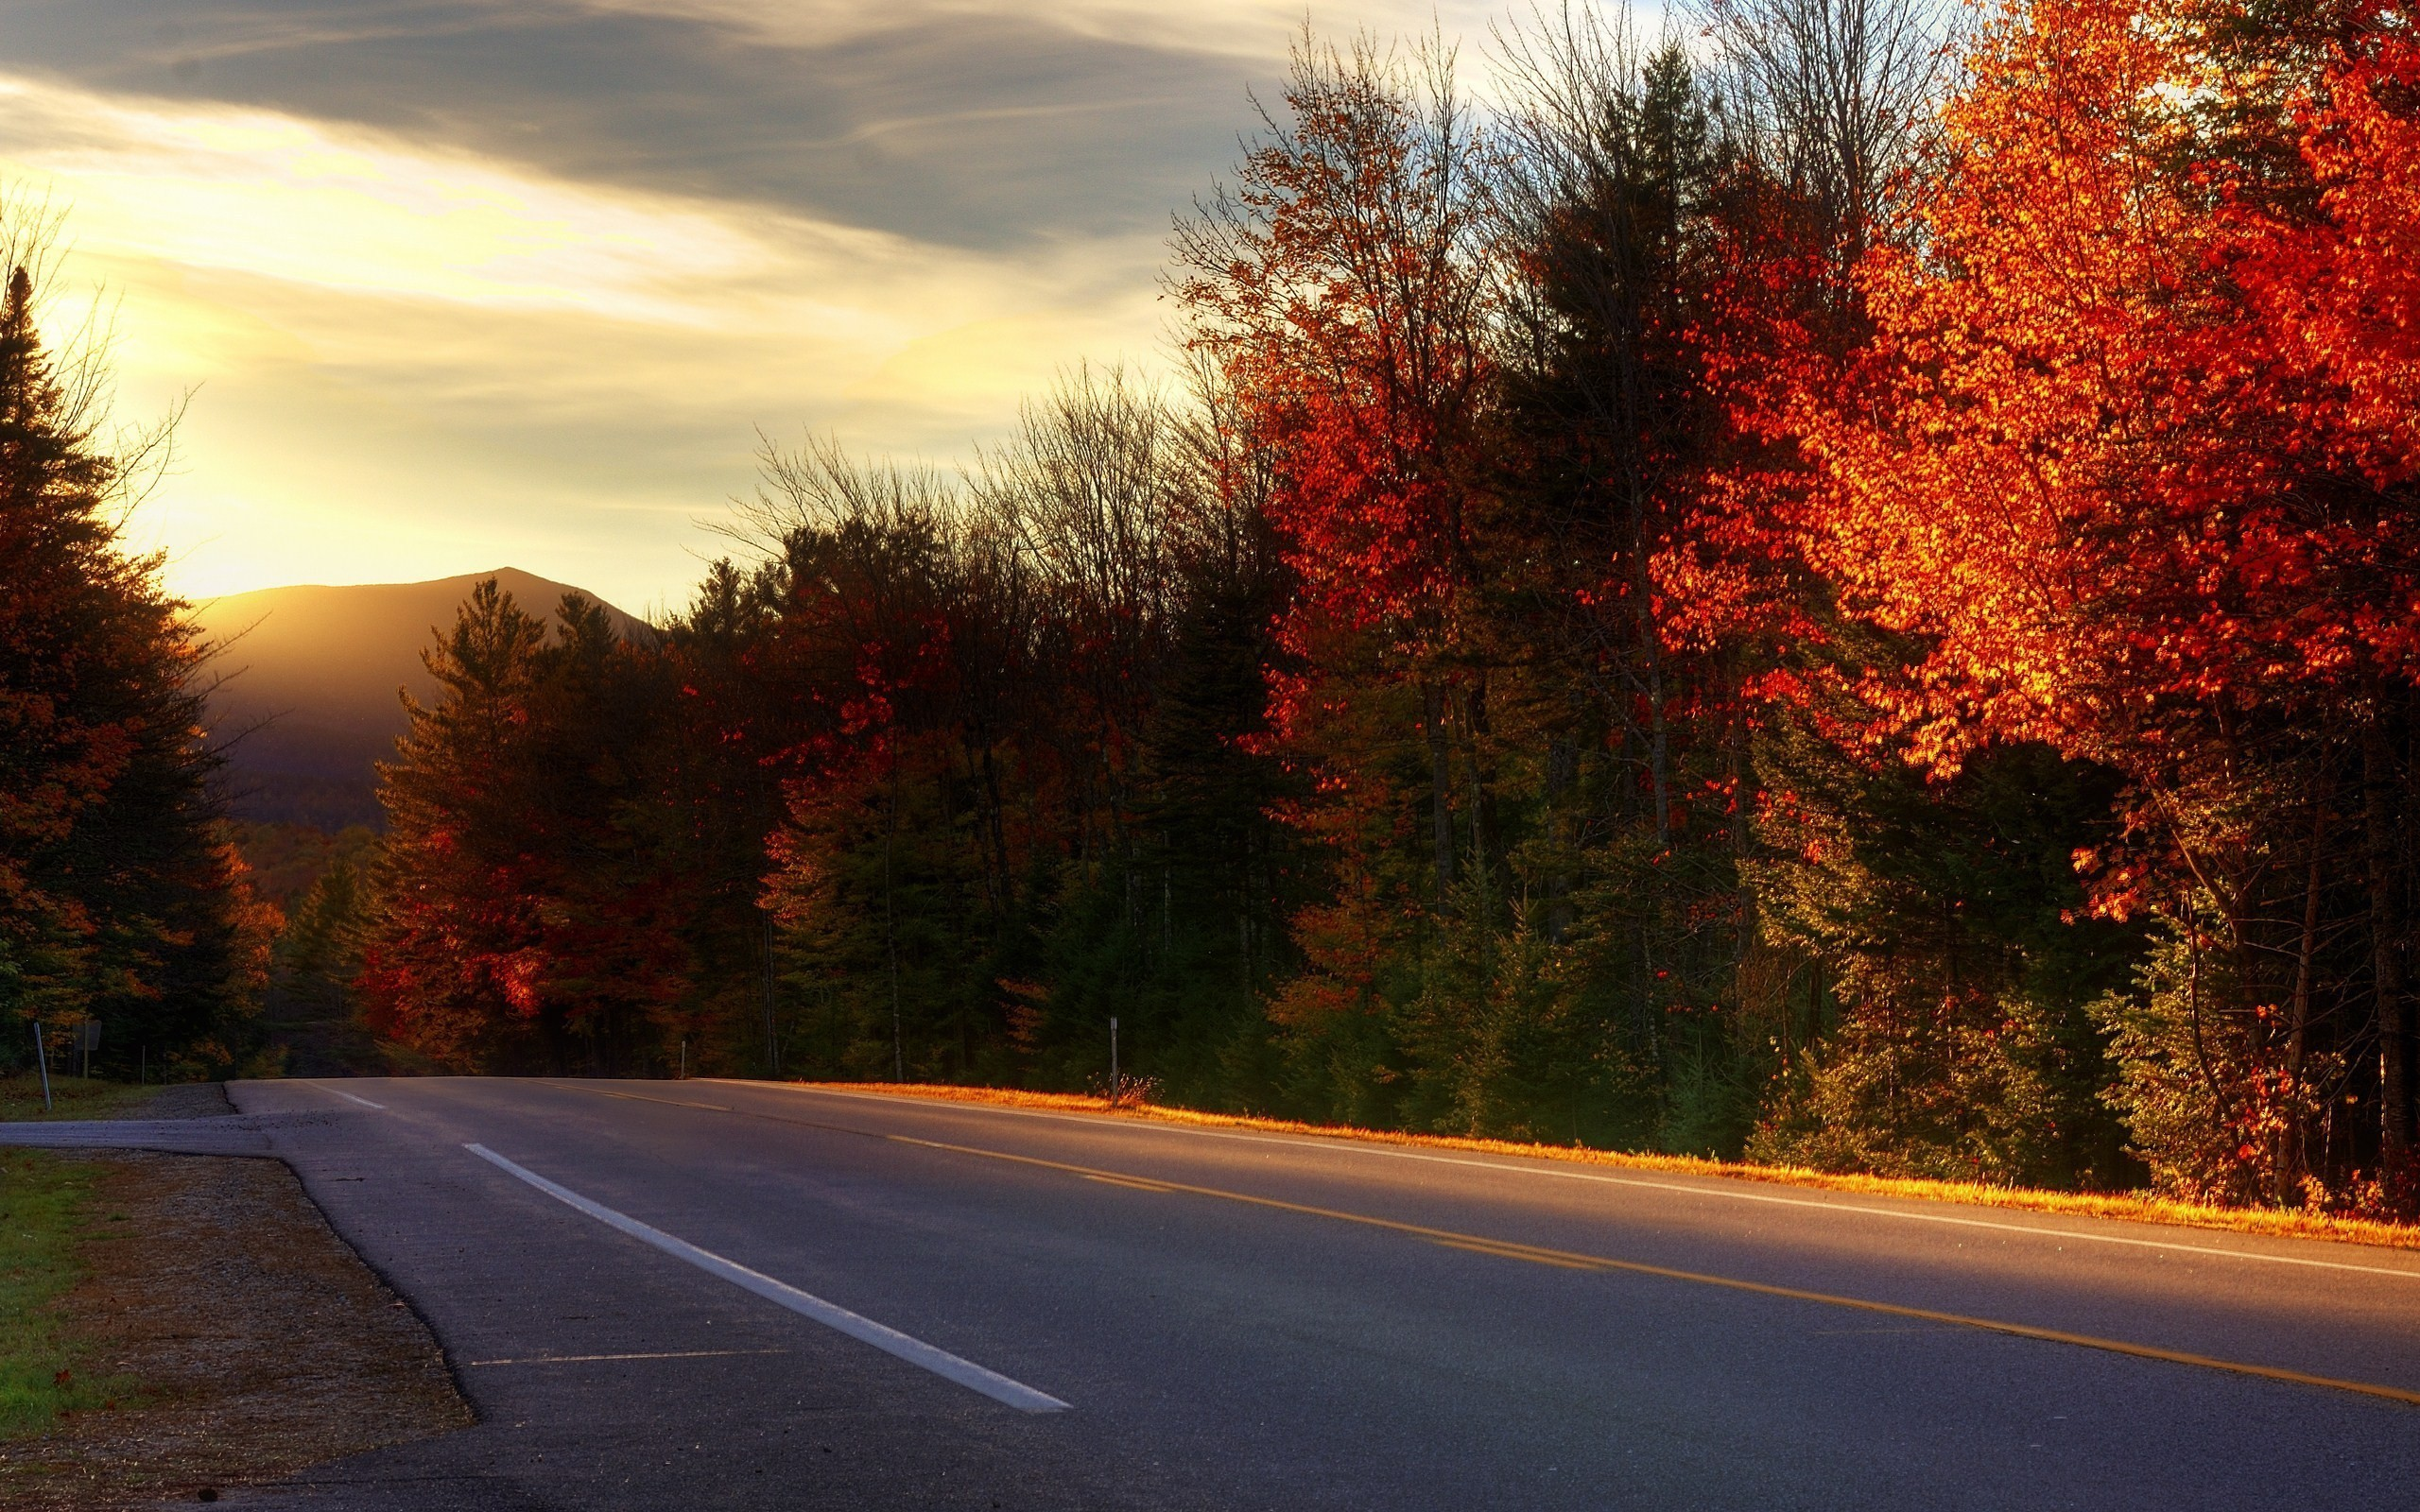 General 2560x1600 photography nature landscape road fall trees plants